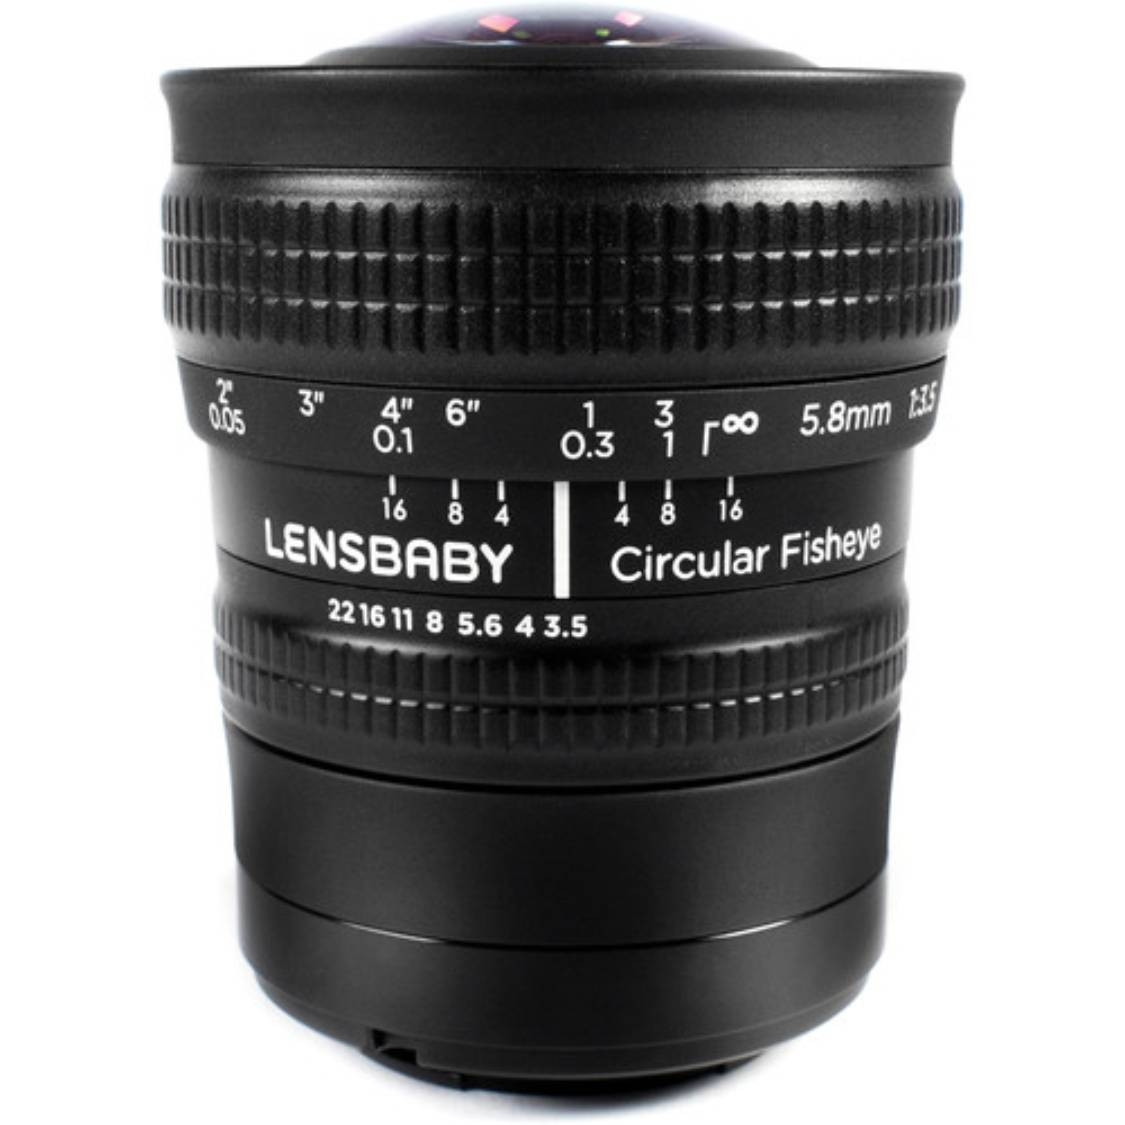 Lensbaby Circular Fisheye (Micro Four Thirds)